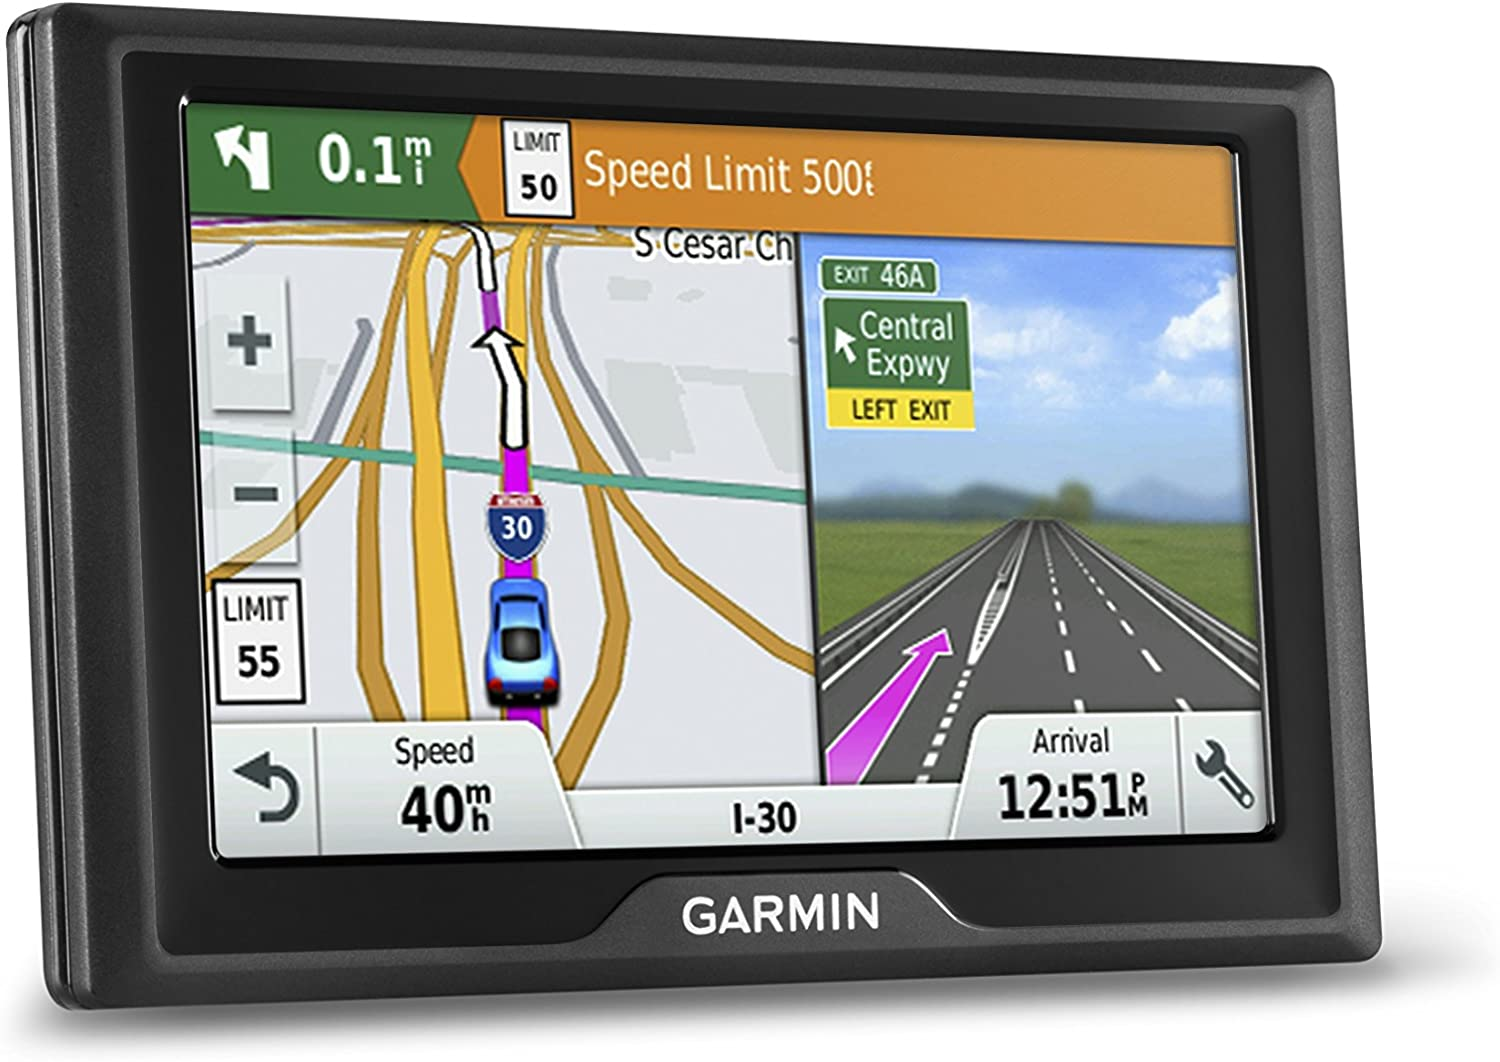 B077H5M4LF Garmin Drive 50 USA LM GPS Navigator System with Lifetime Maps, Spoken Turn-By-Turn Directions, Direct Access, Driver Alerts, and Foursquare Data, (Renewed) 71VXwad8GKL